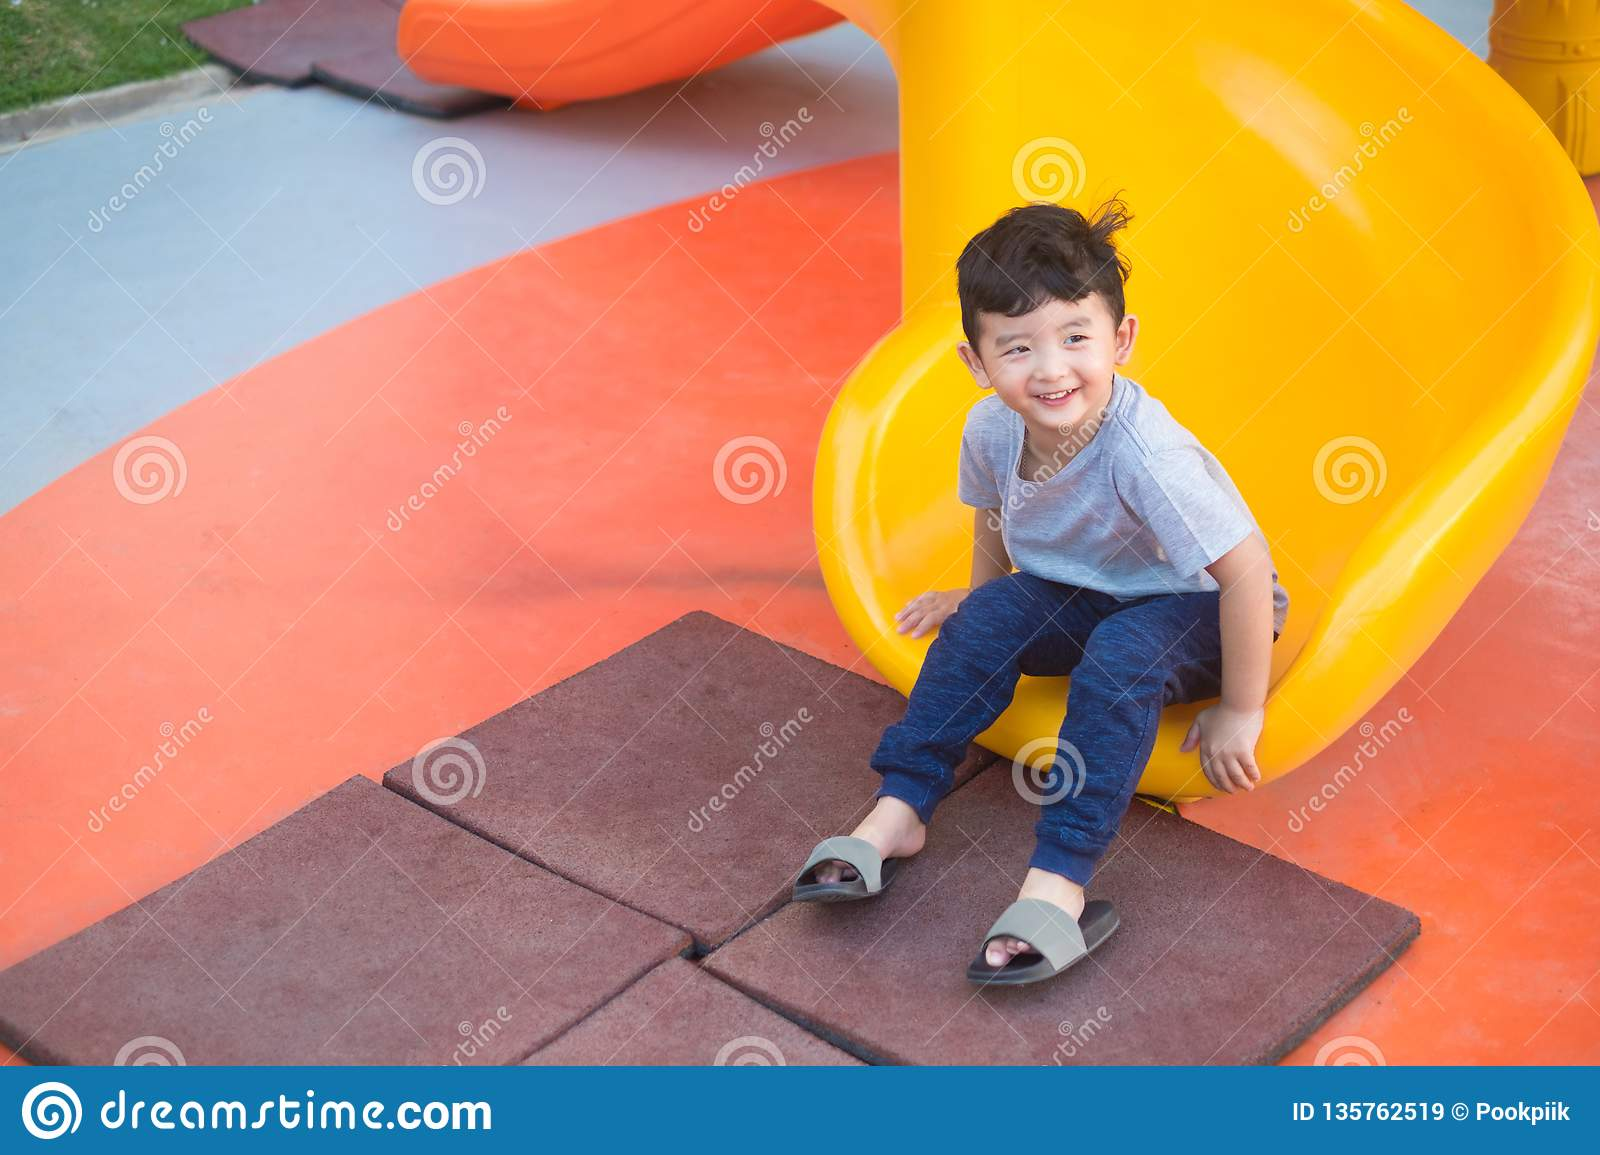 Asian kid playing slide at the playground under the sunlight in summer, Happy kid in kindergarten or preschool school yard